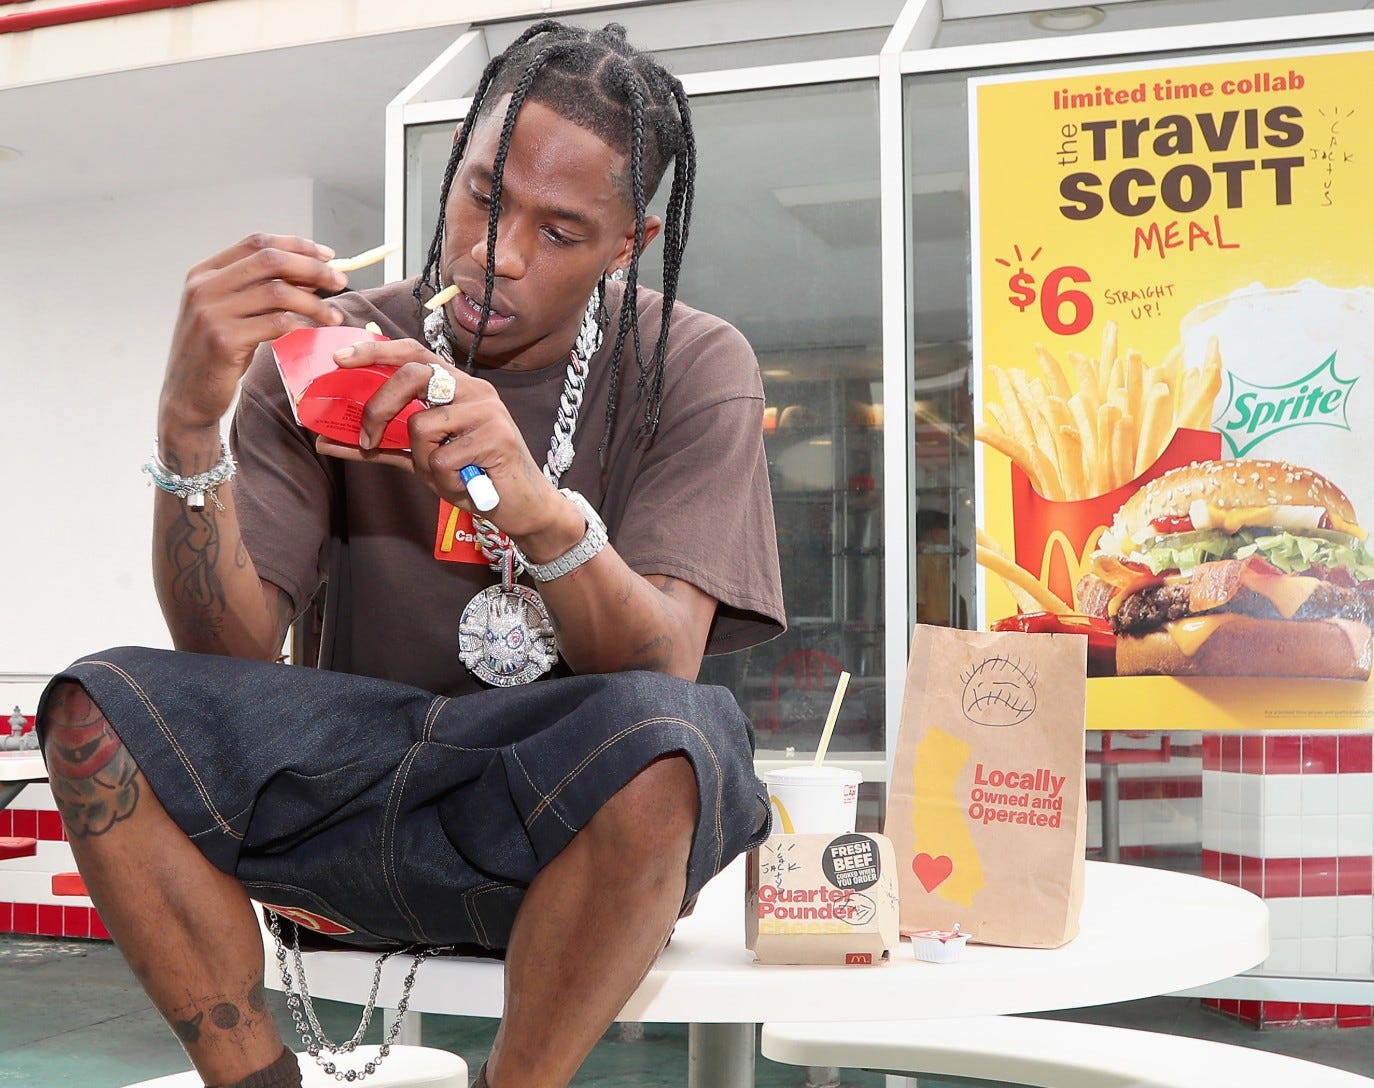 Travis Scott Mcdonald S Meal Demand Higher Than Expected Selling Out